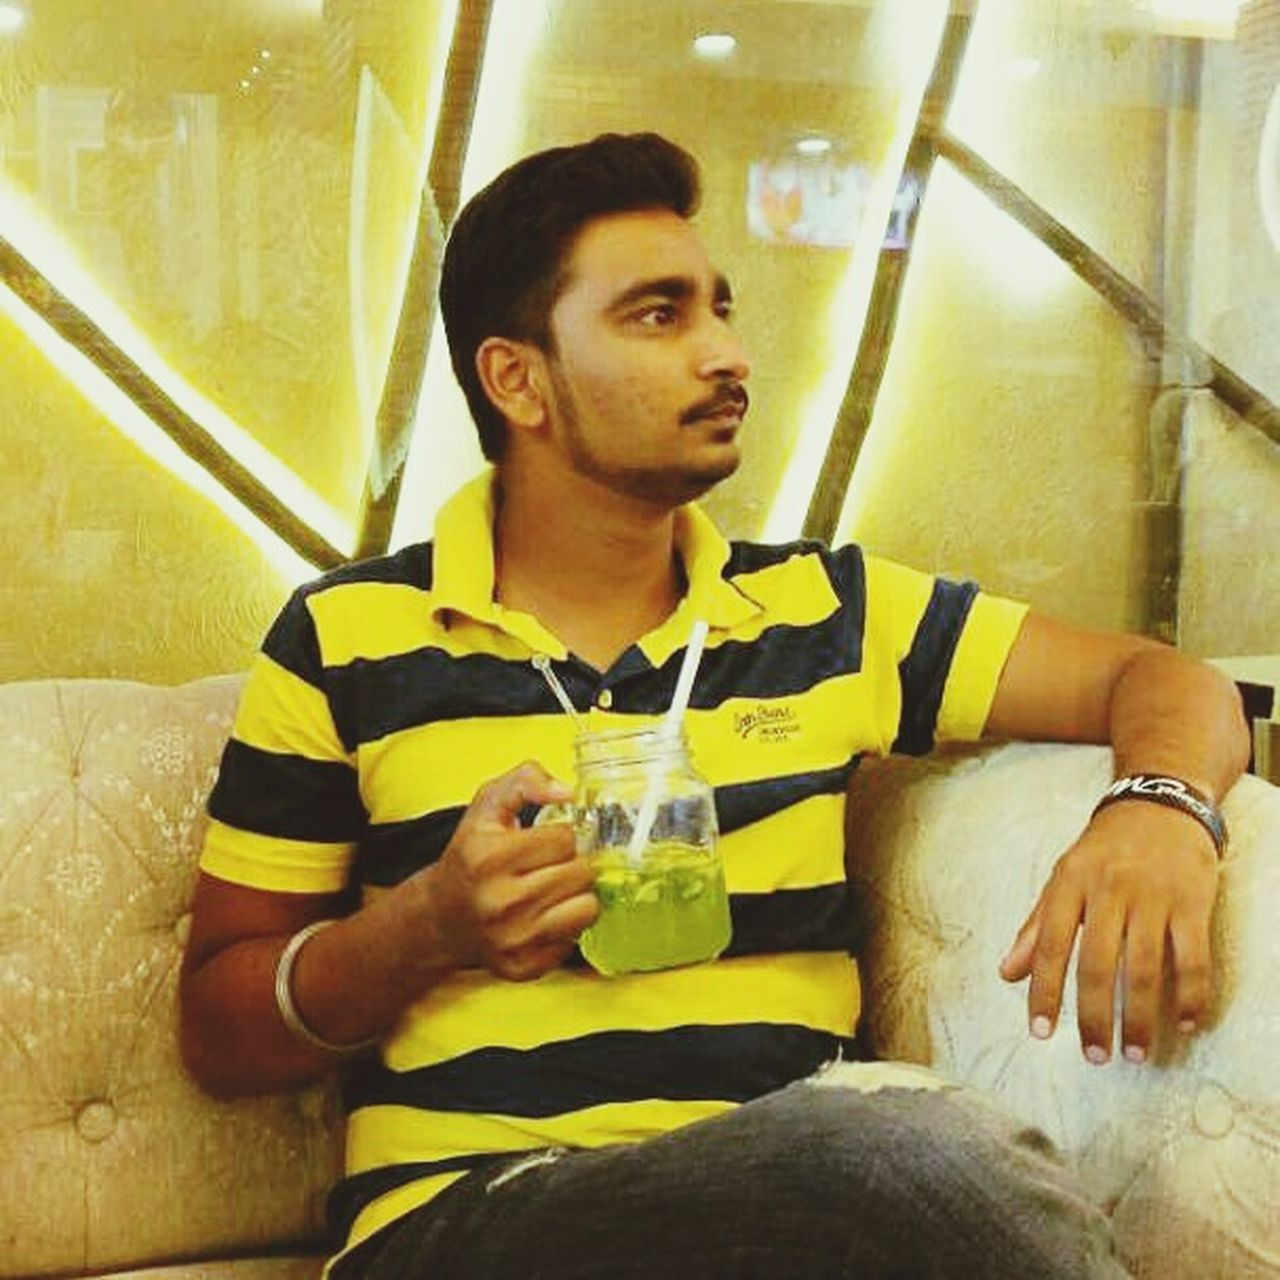 drink, drinking, one person, food and drink, refreshment, sitting, young adult, holding, drinking glass, alcohol, young men, one man only, indoors, front view, leisure activity, real people, water, lifestyles, only men, adults only, day, adult, people